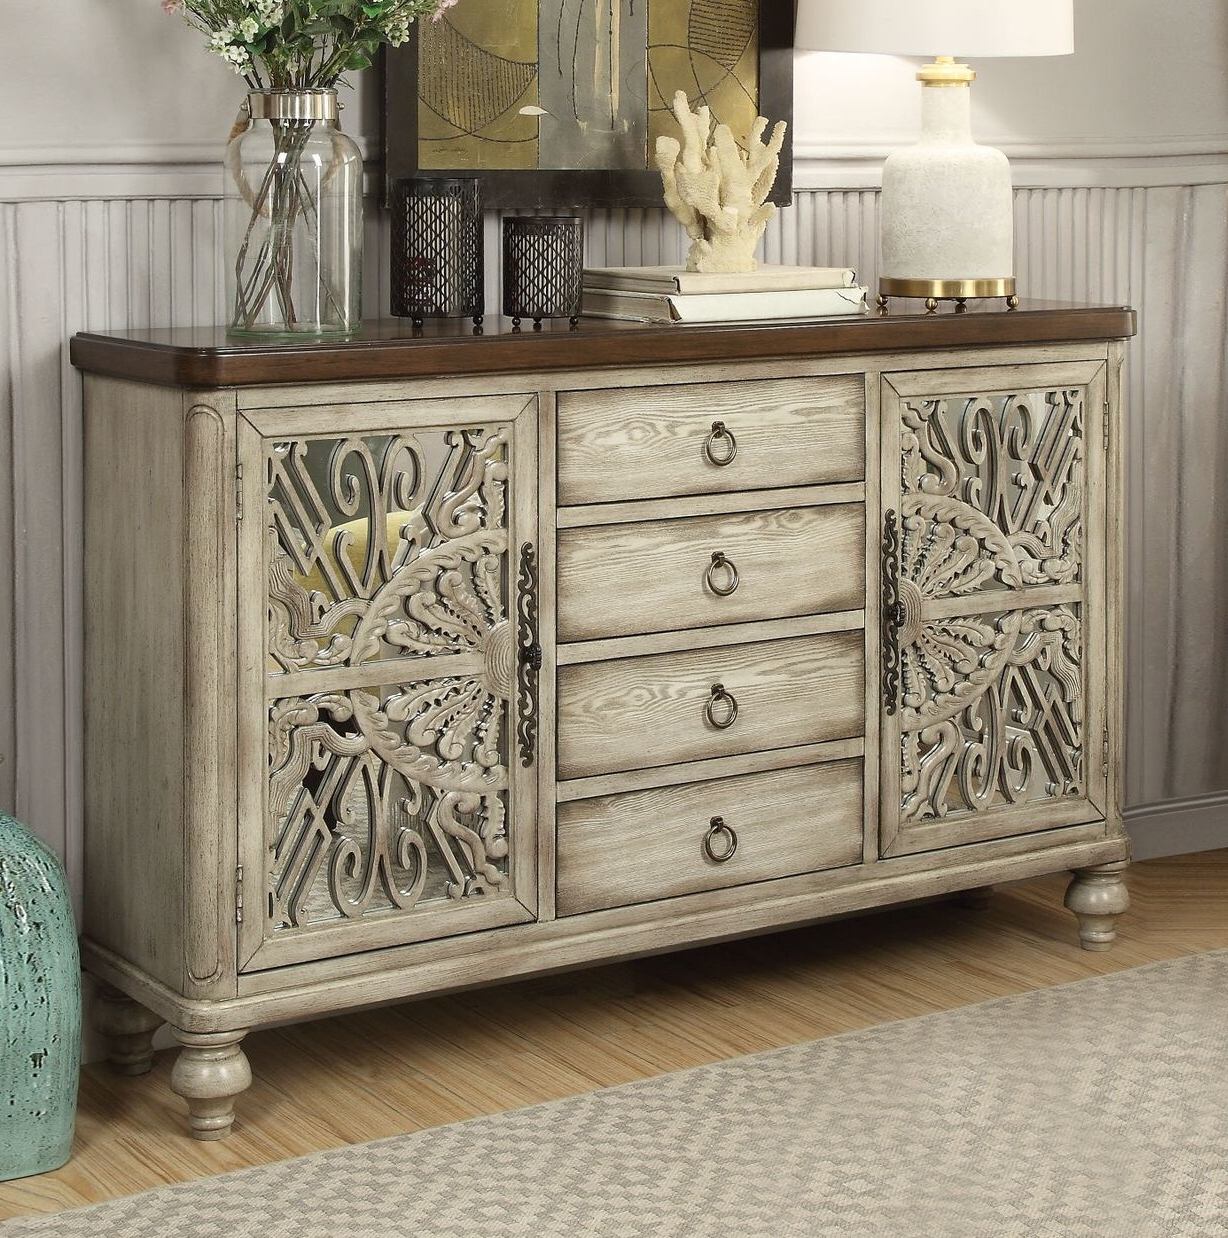 Antique White Sideboard Buffet | Wayfair (View 14 of 20)